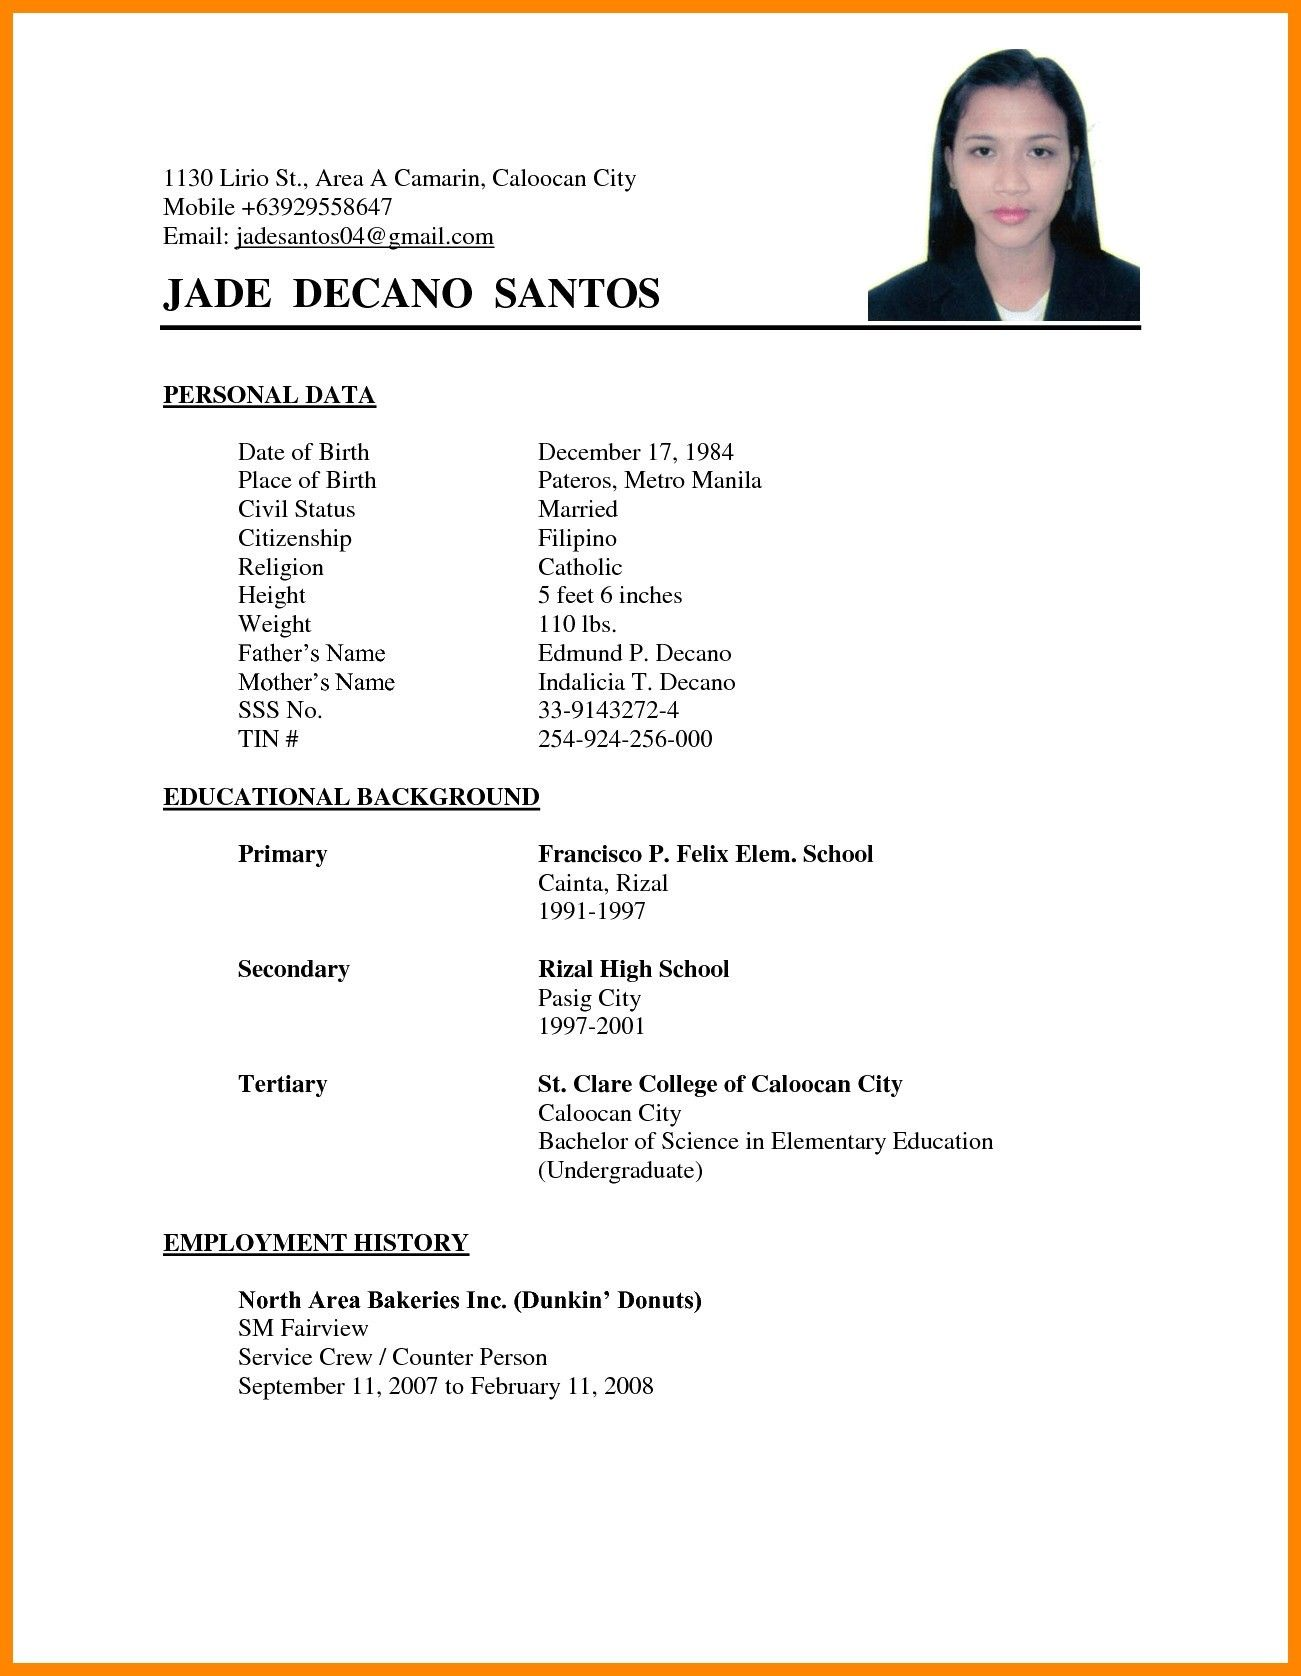 Muslim Marriage Resume Format For Boy Unique Proposal The Standard Of 13 Matrimony Biodata Template On Basic Resume Basic Resume Examples Simple Resume Format